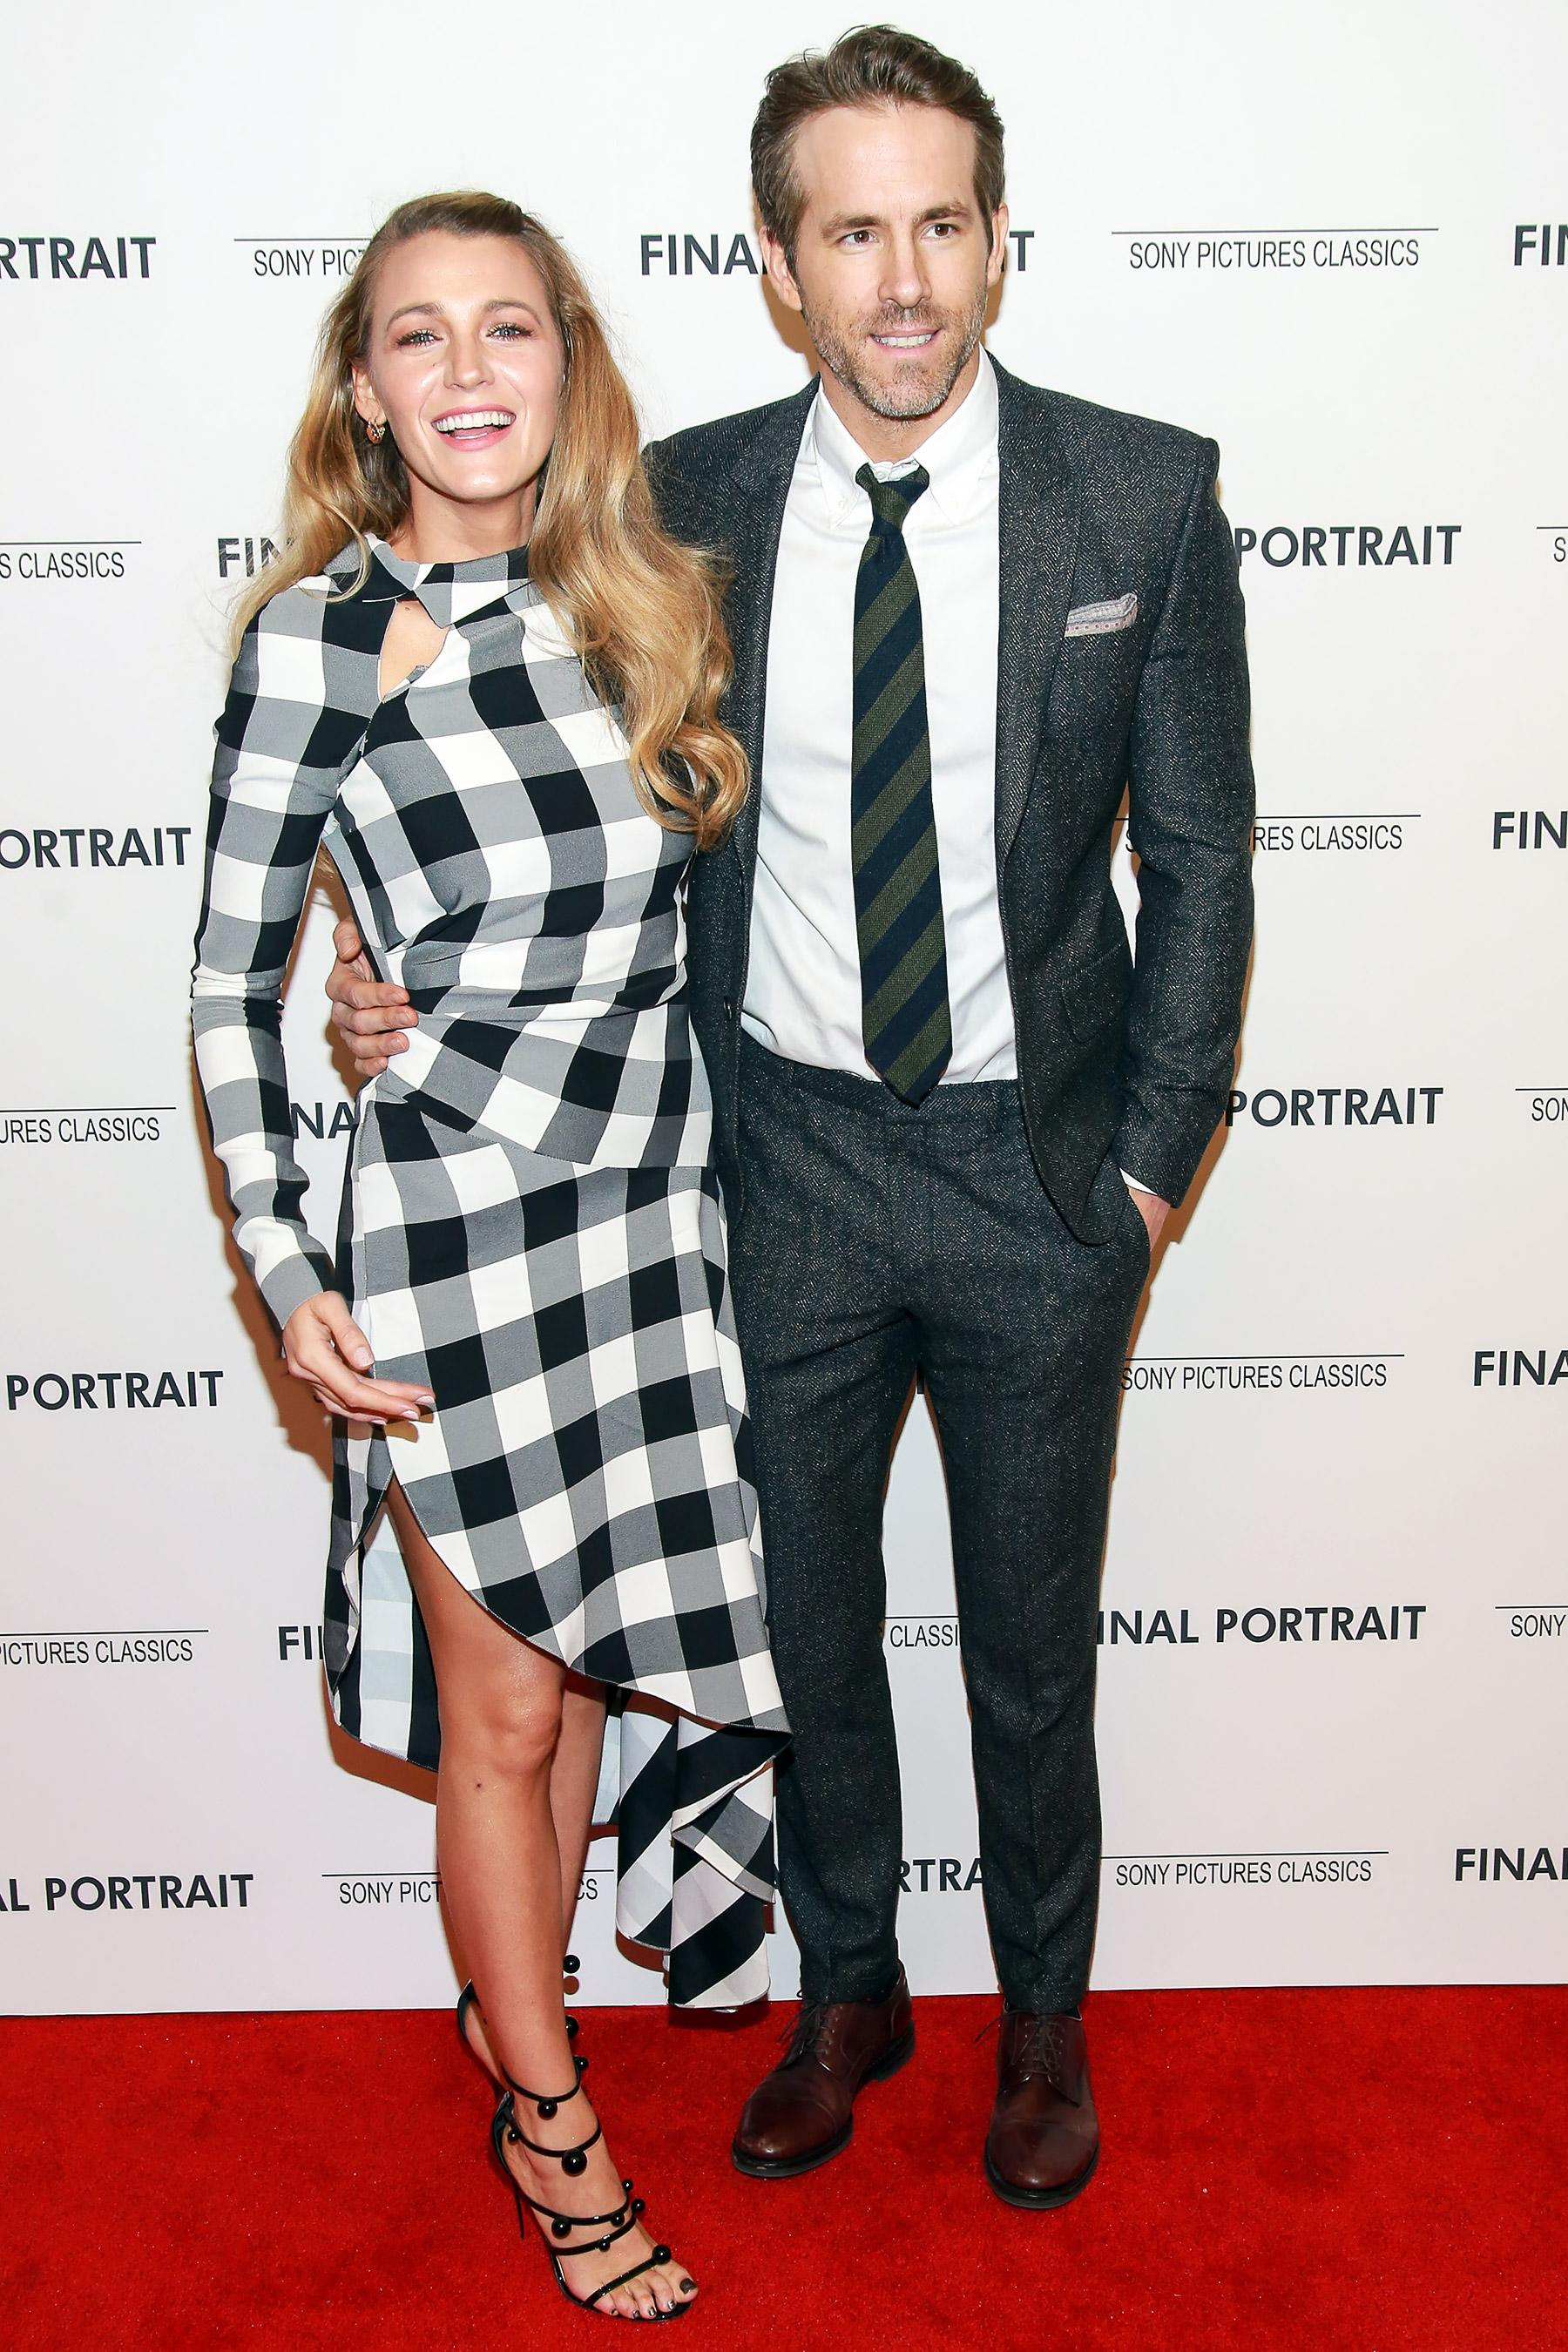 Ryan Reynolds Jokes He and Wife Blake Lively Have Only Had